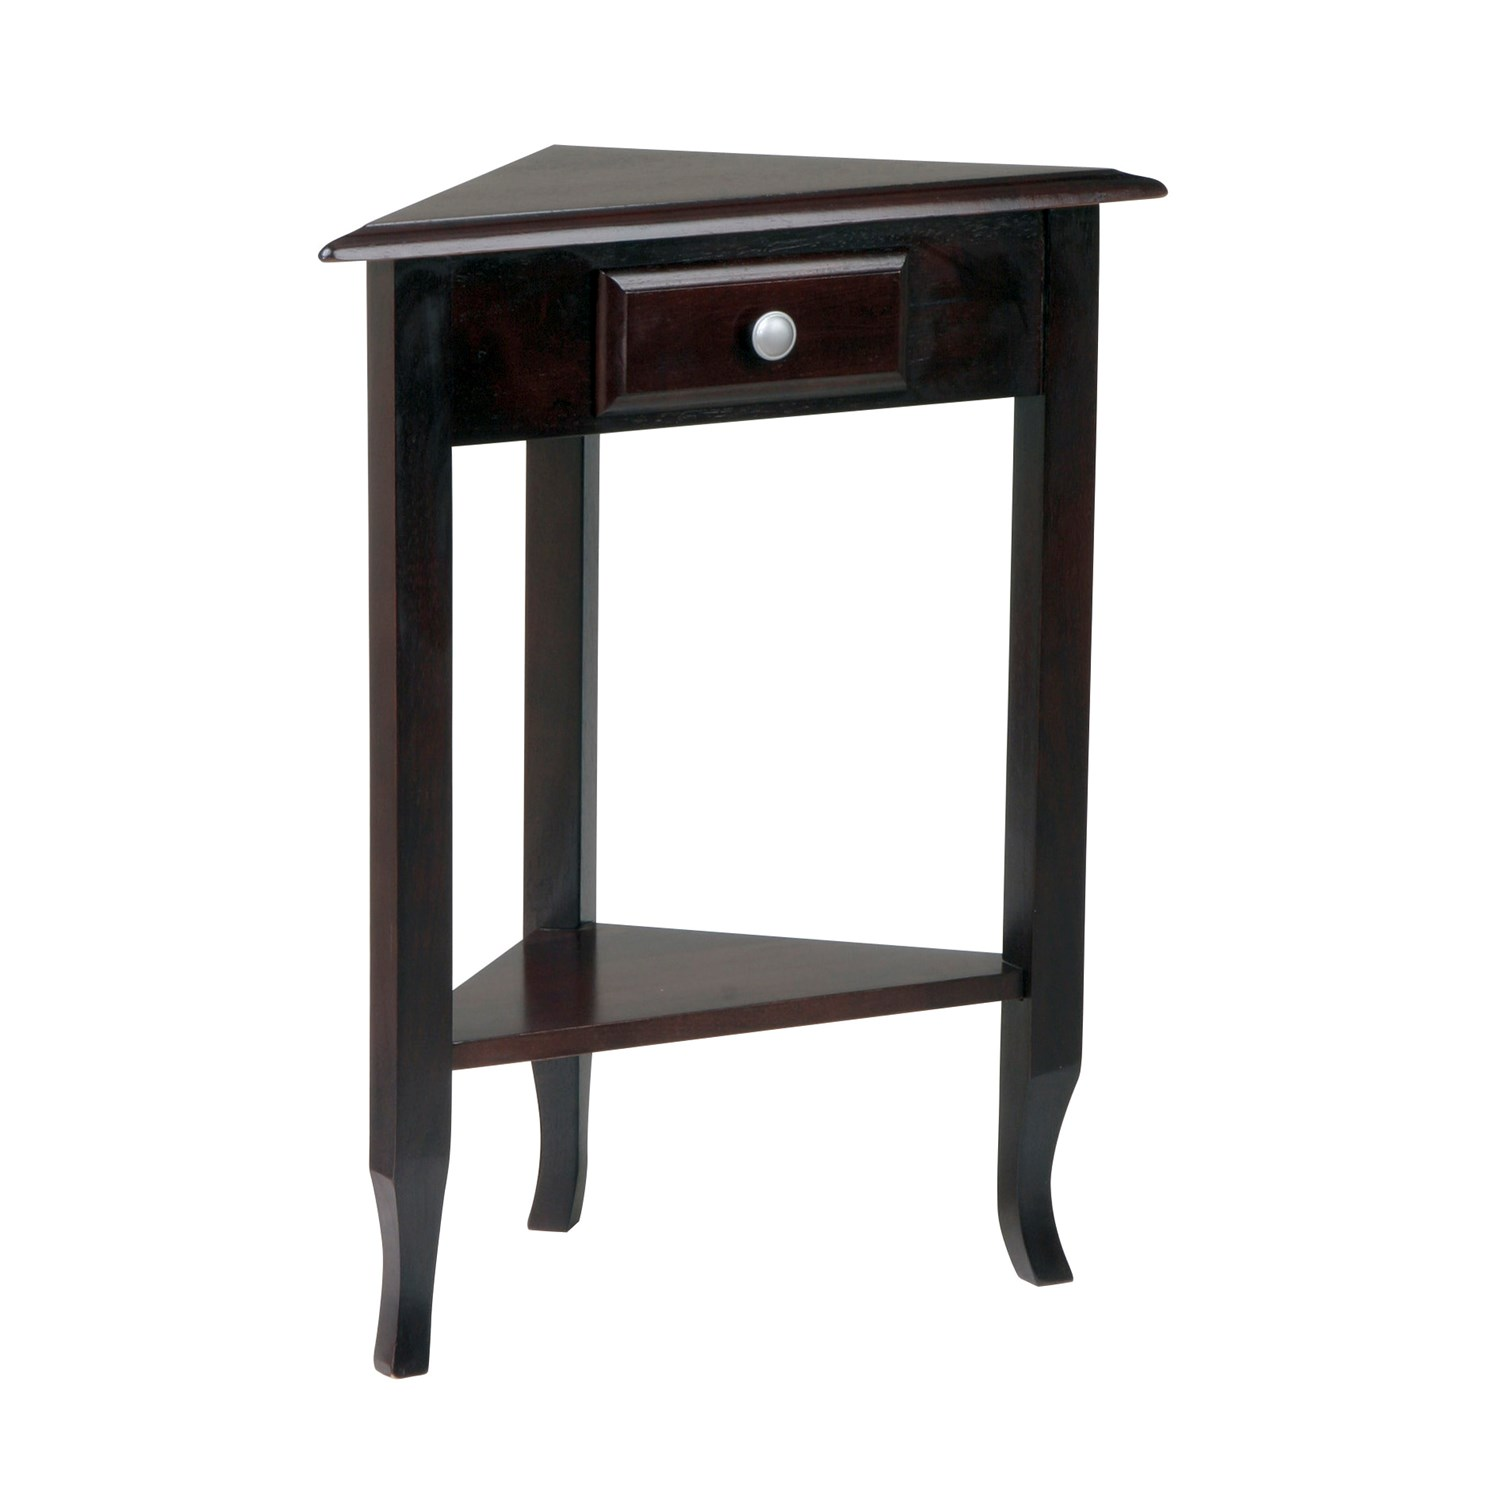 office star products merlot corner accent table black white round coffee and end tables outdoor chair covers home goods vanity lamp shades for lamps reclaimed doors large patio